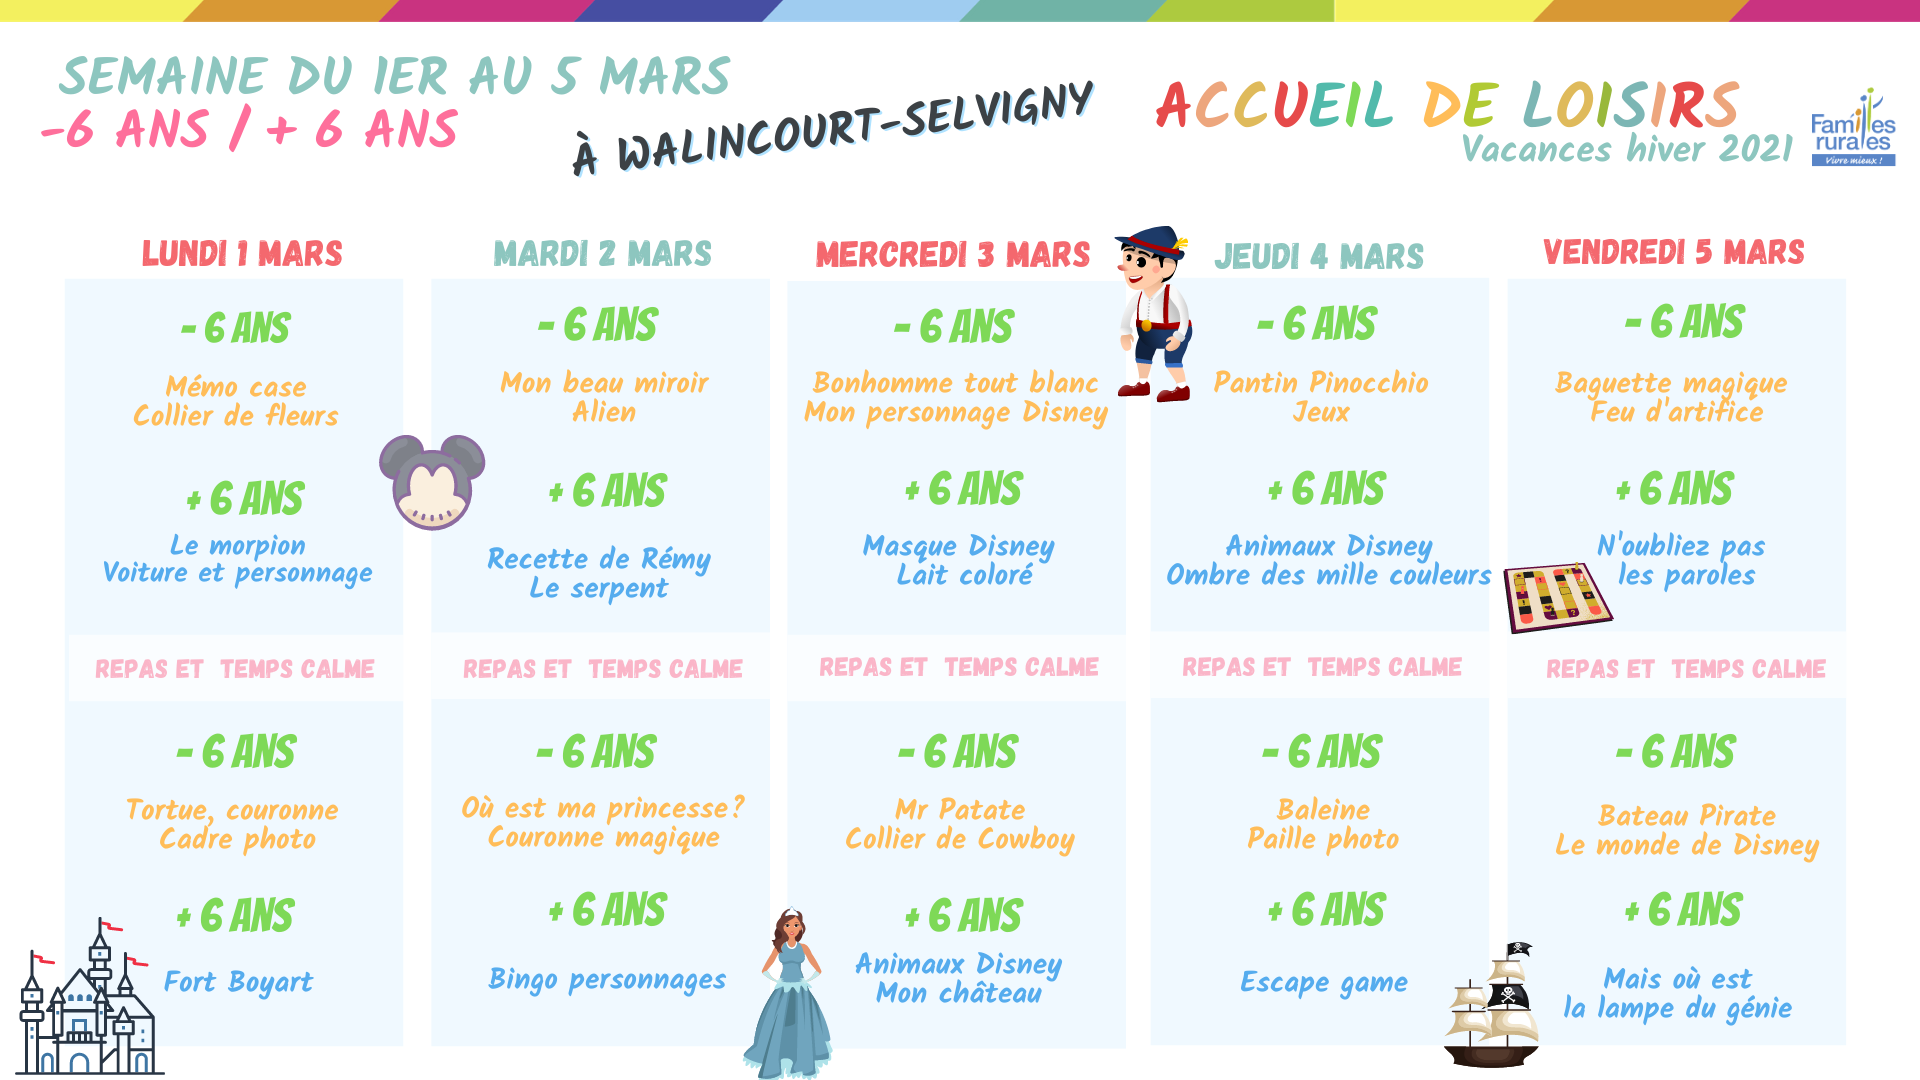 accueils loisirs plannings hiver